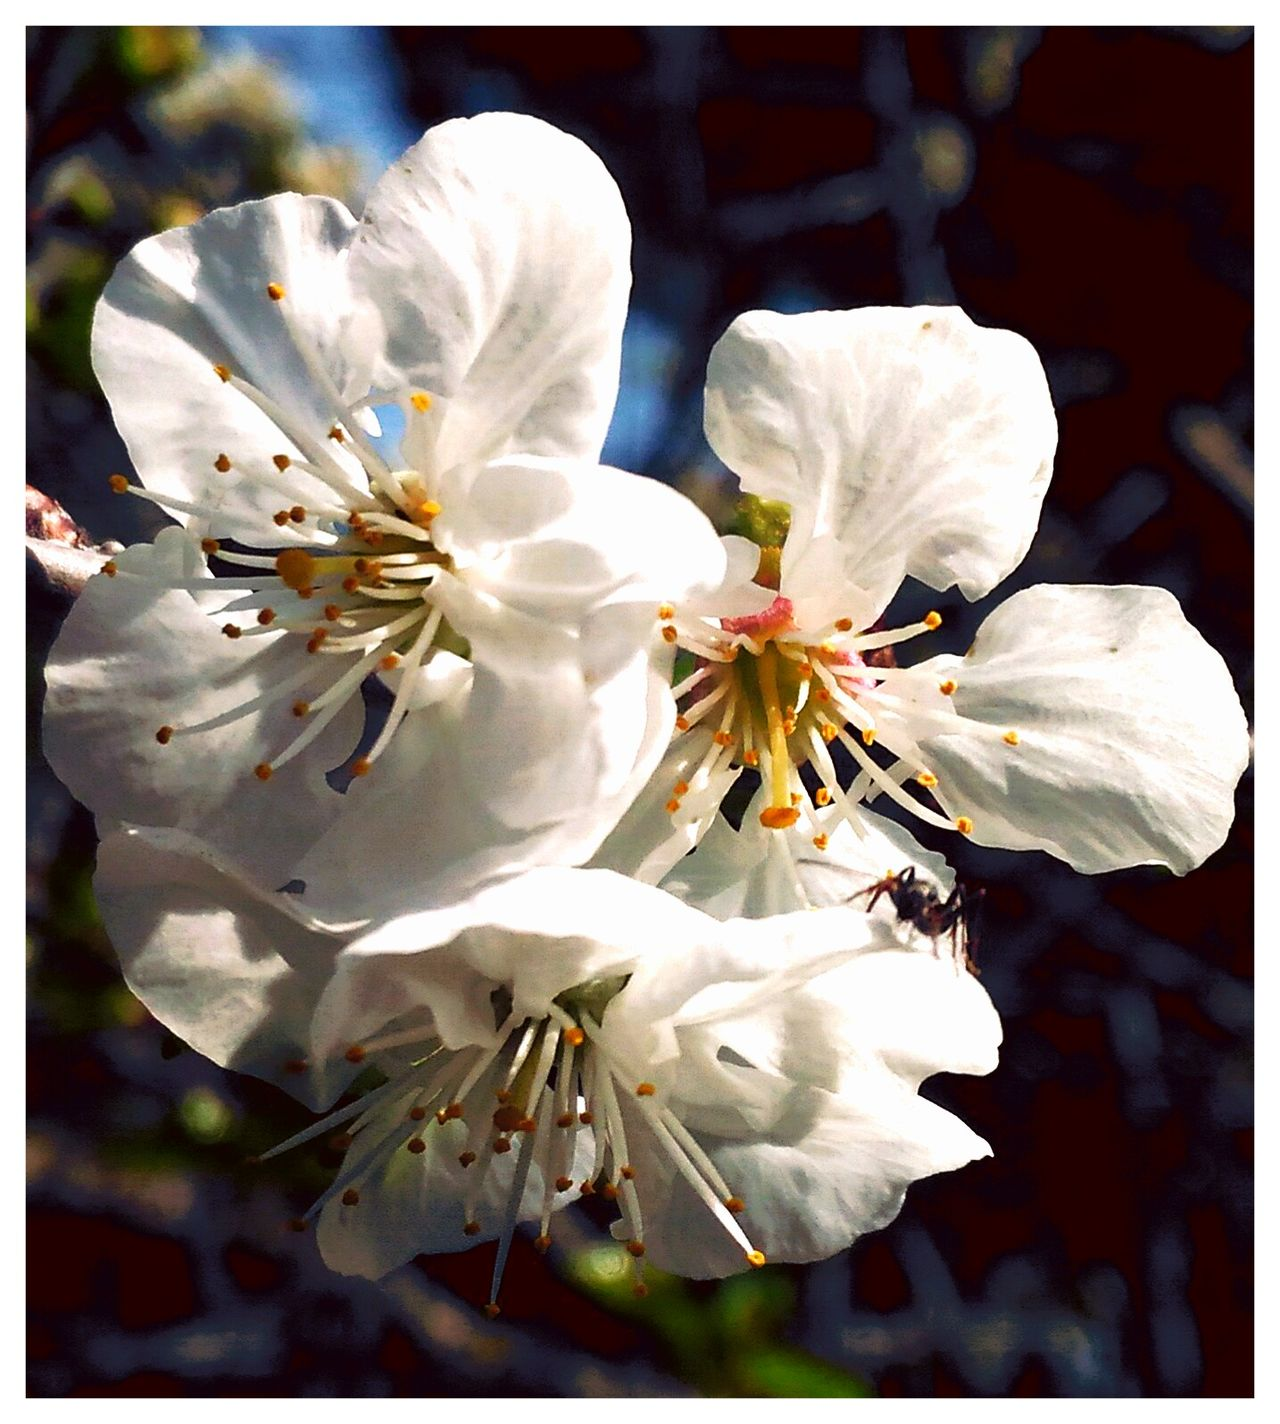 Spring Flowers Showcase April Flowers, Nature And Beauty Cherry Blossoms Ant White White Flower